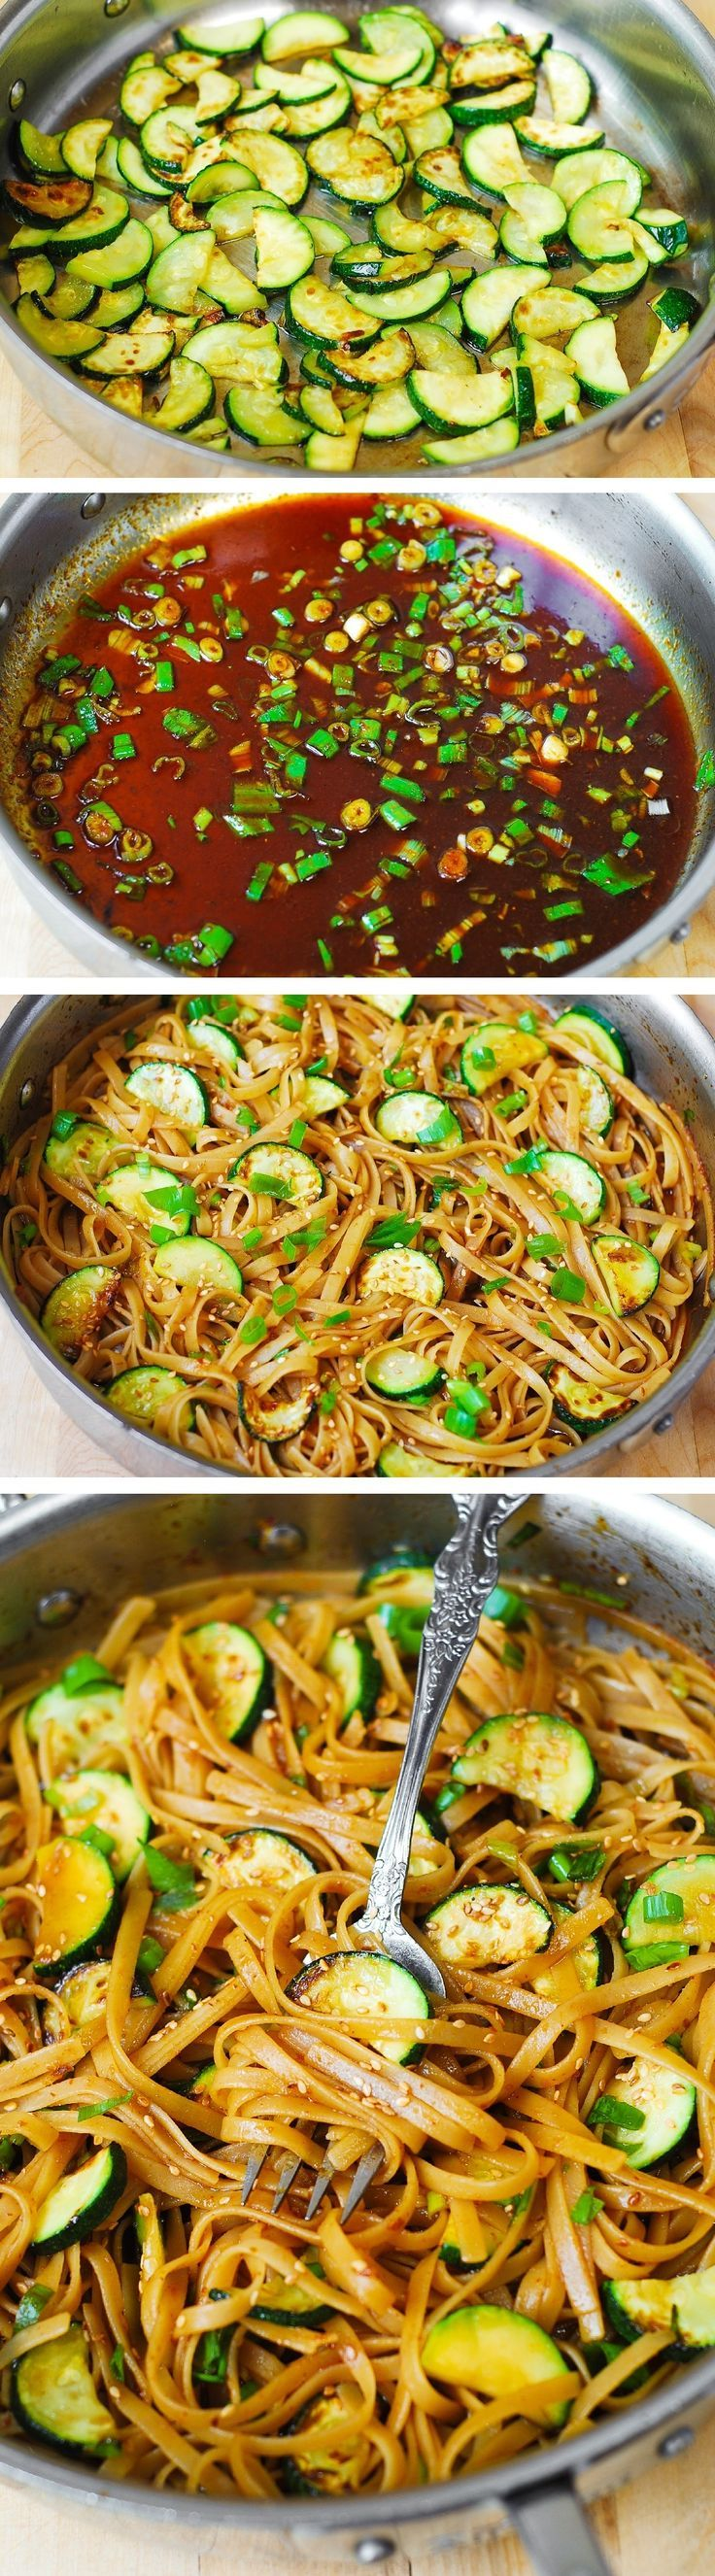 Spicy Thai Zucchini Noodles with toasted sesame seeds  Asian comfort food